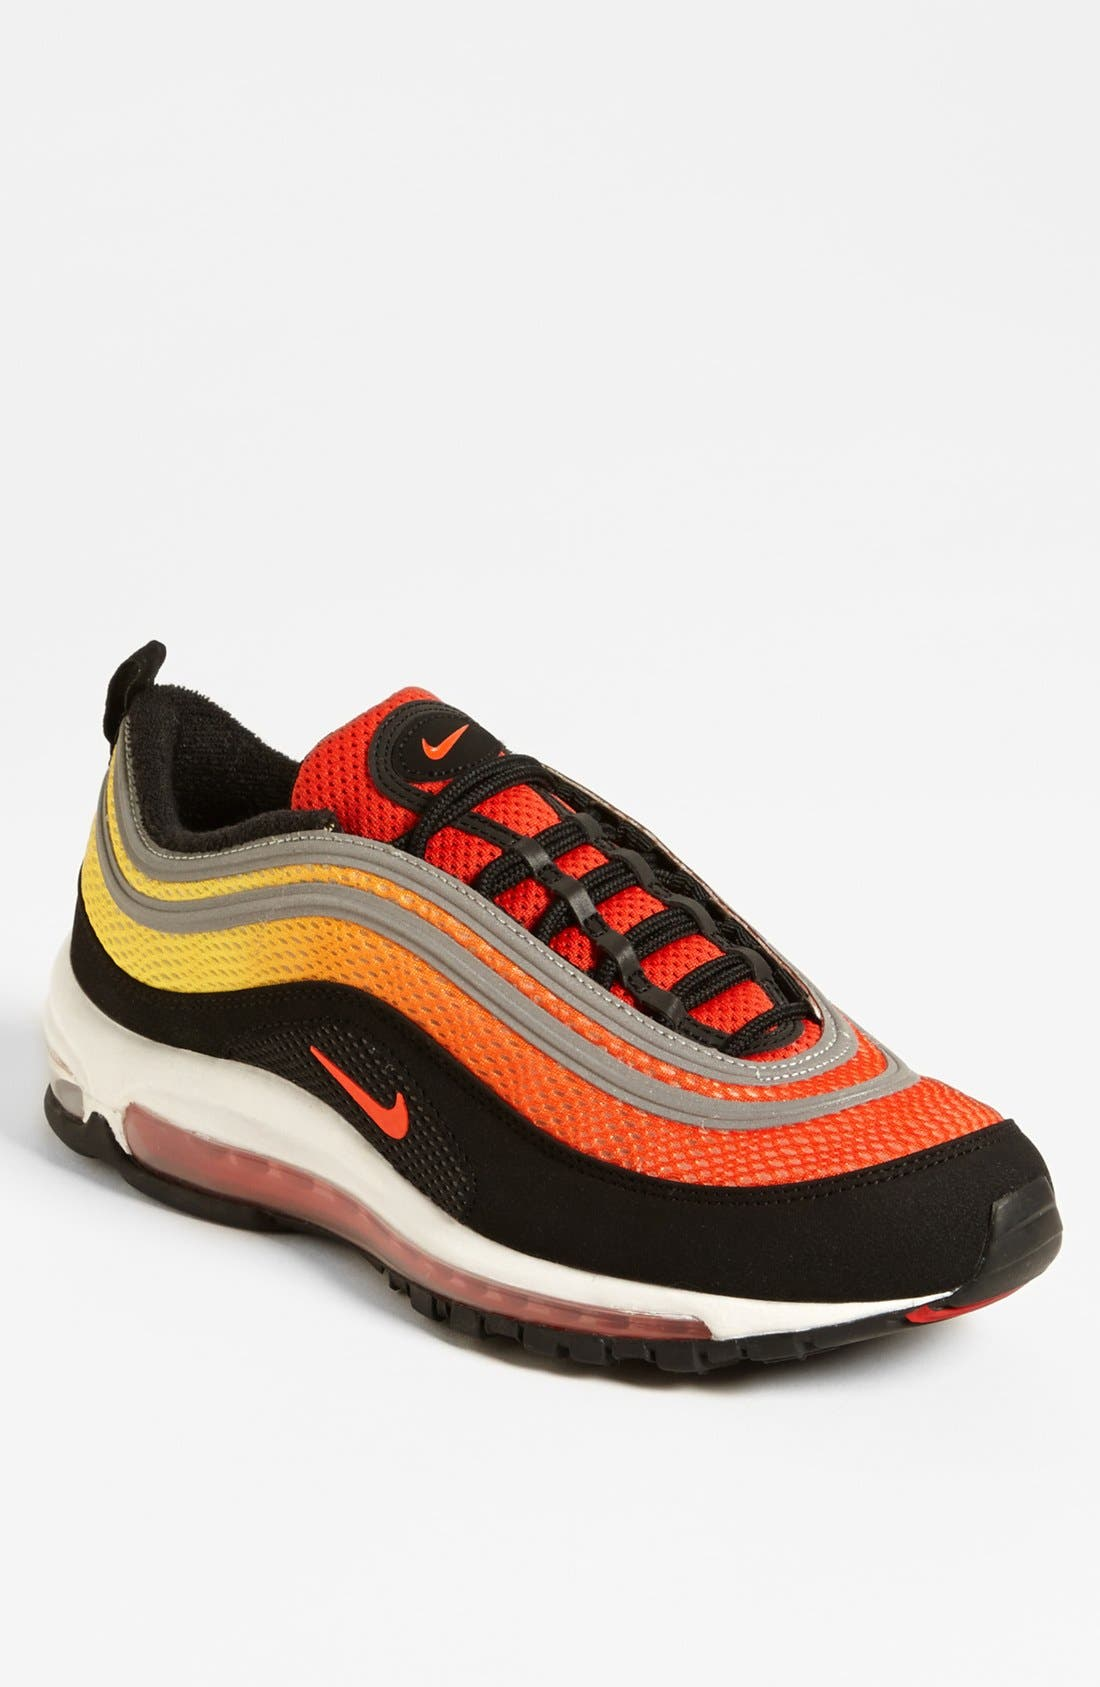 Main Image - Nike 'Air Max 97 Premium' Sneaker (Men)